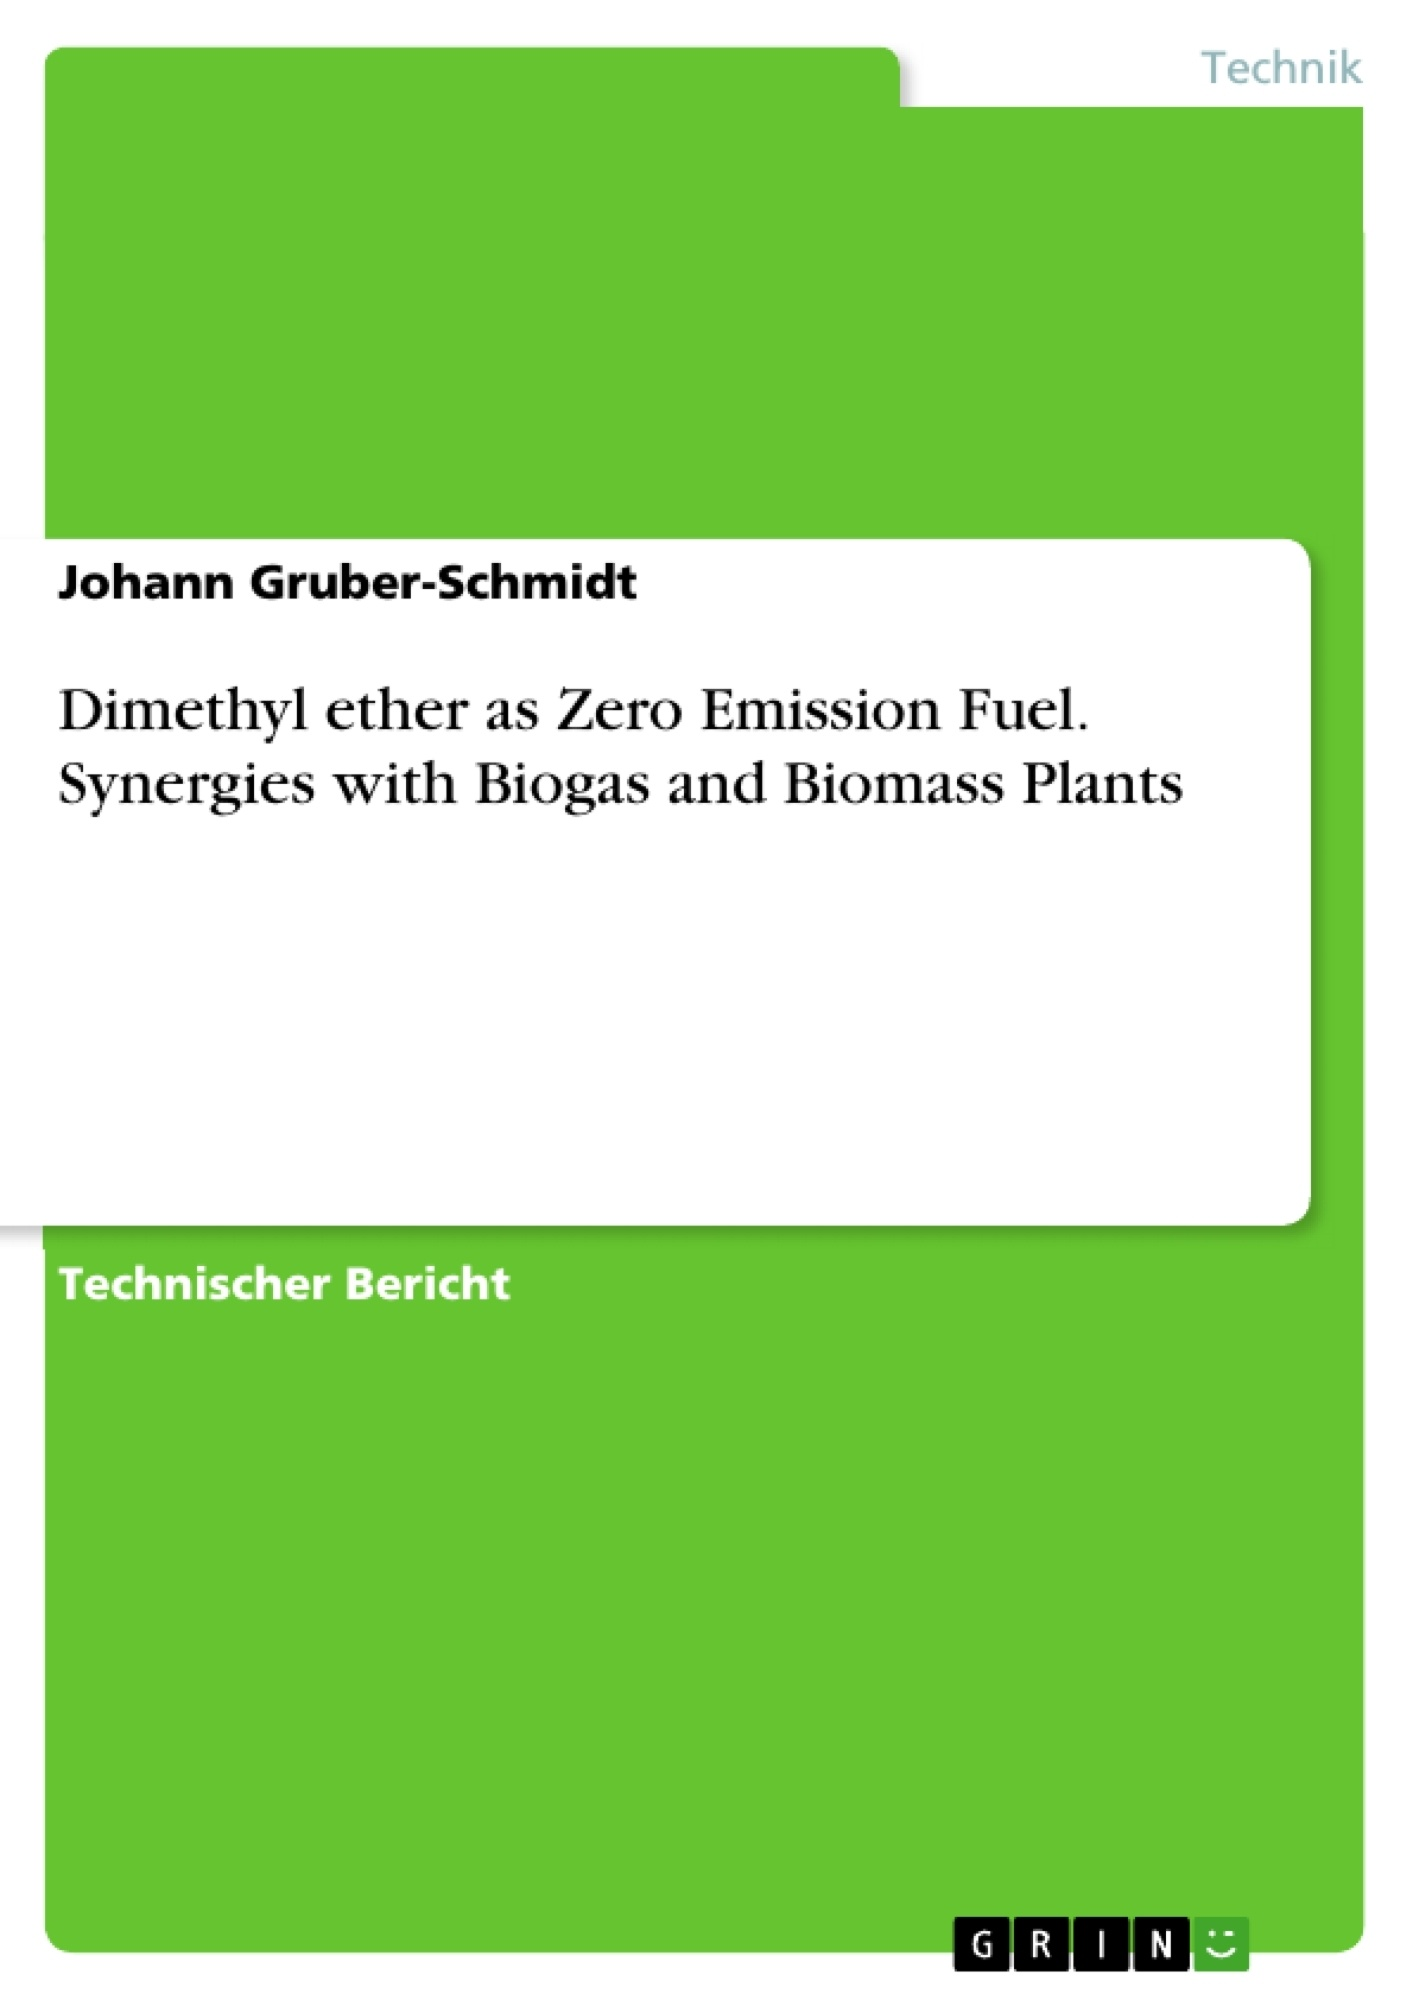 Titel: Dimethyl ether as Zero Emission Fuel. Synergies with Biogas and Biomass Plants